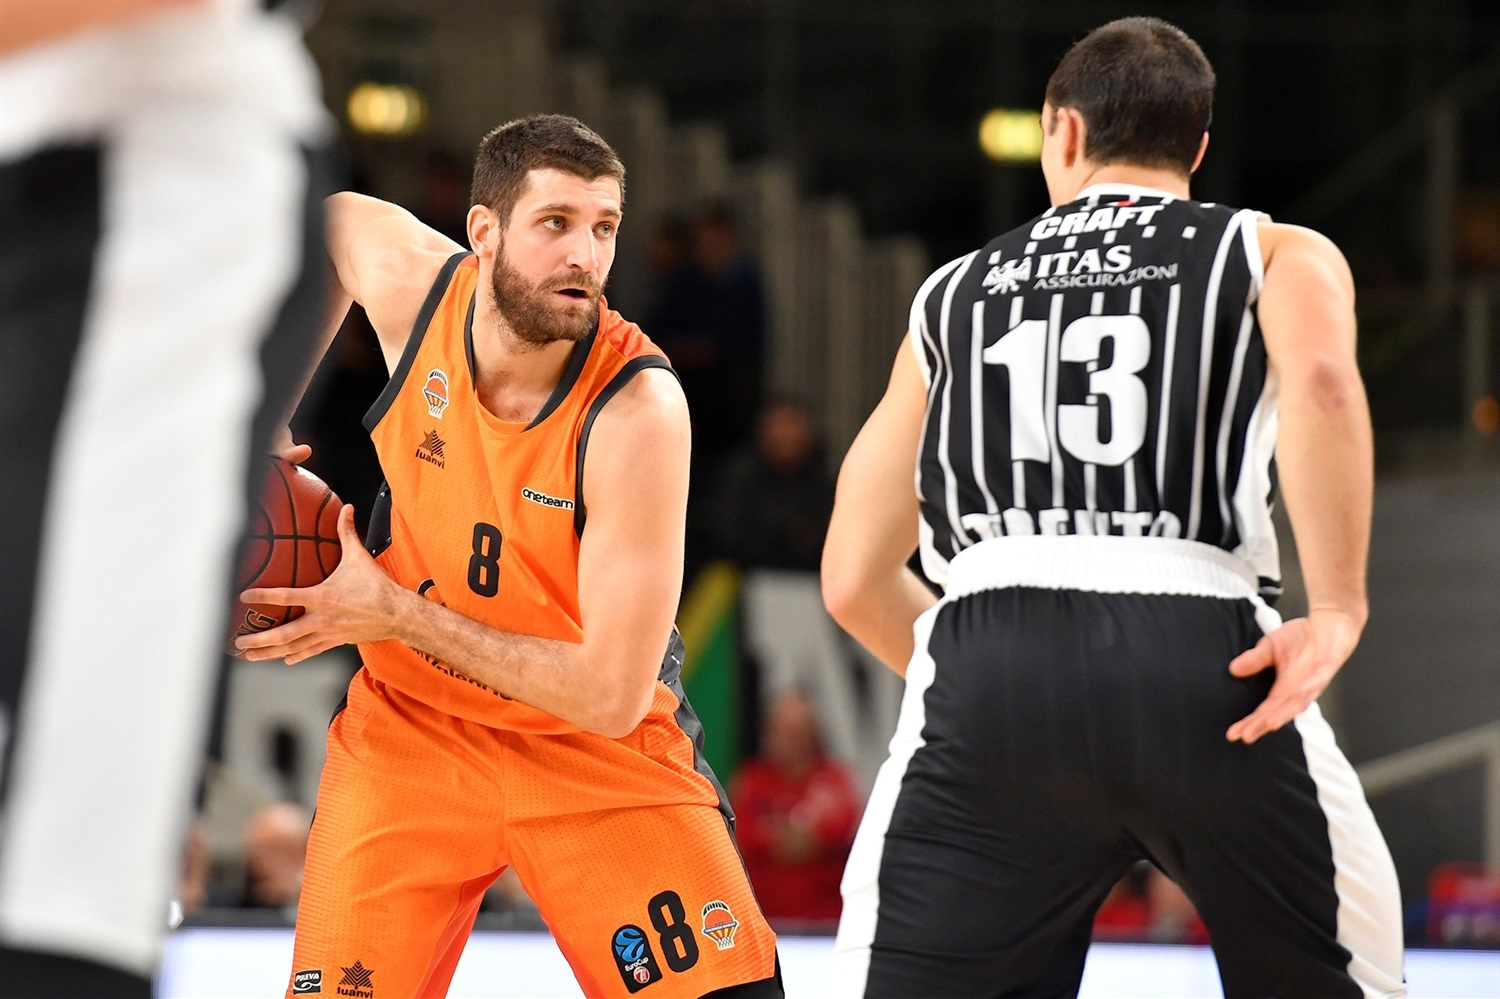 Antoine Diot - Valencia Basket (photo Trento) - EC18